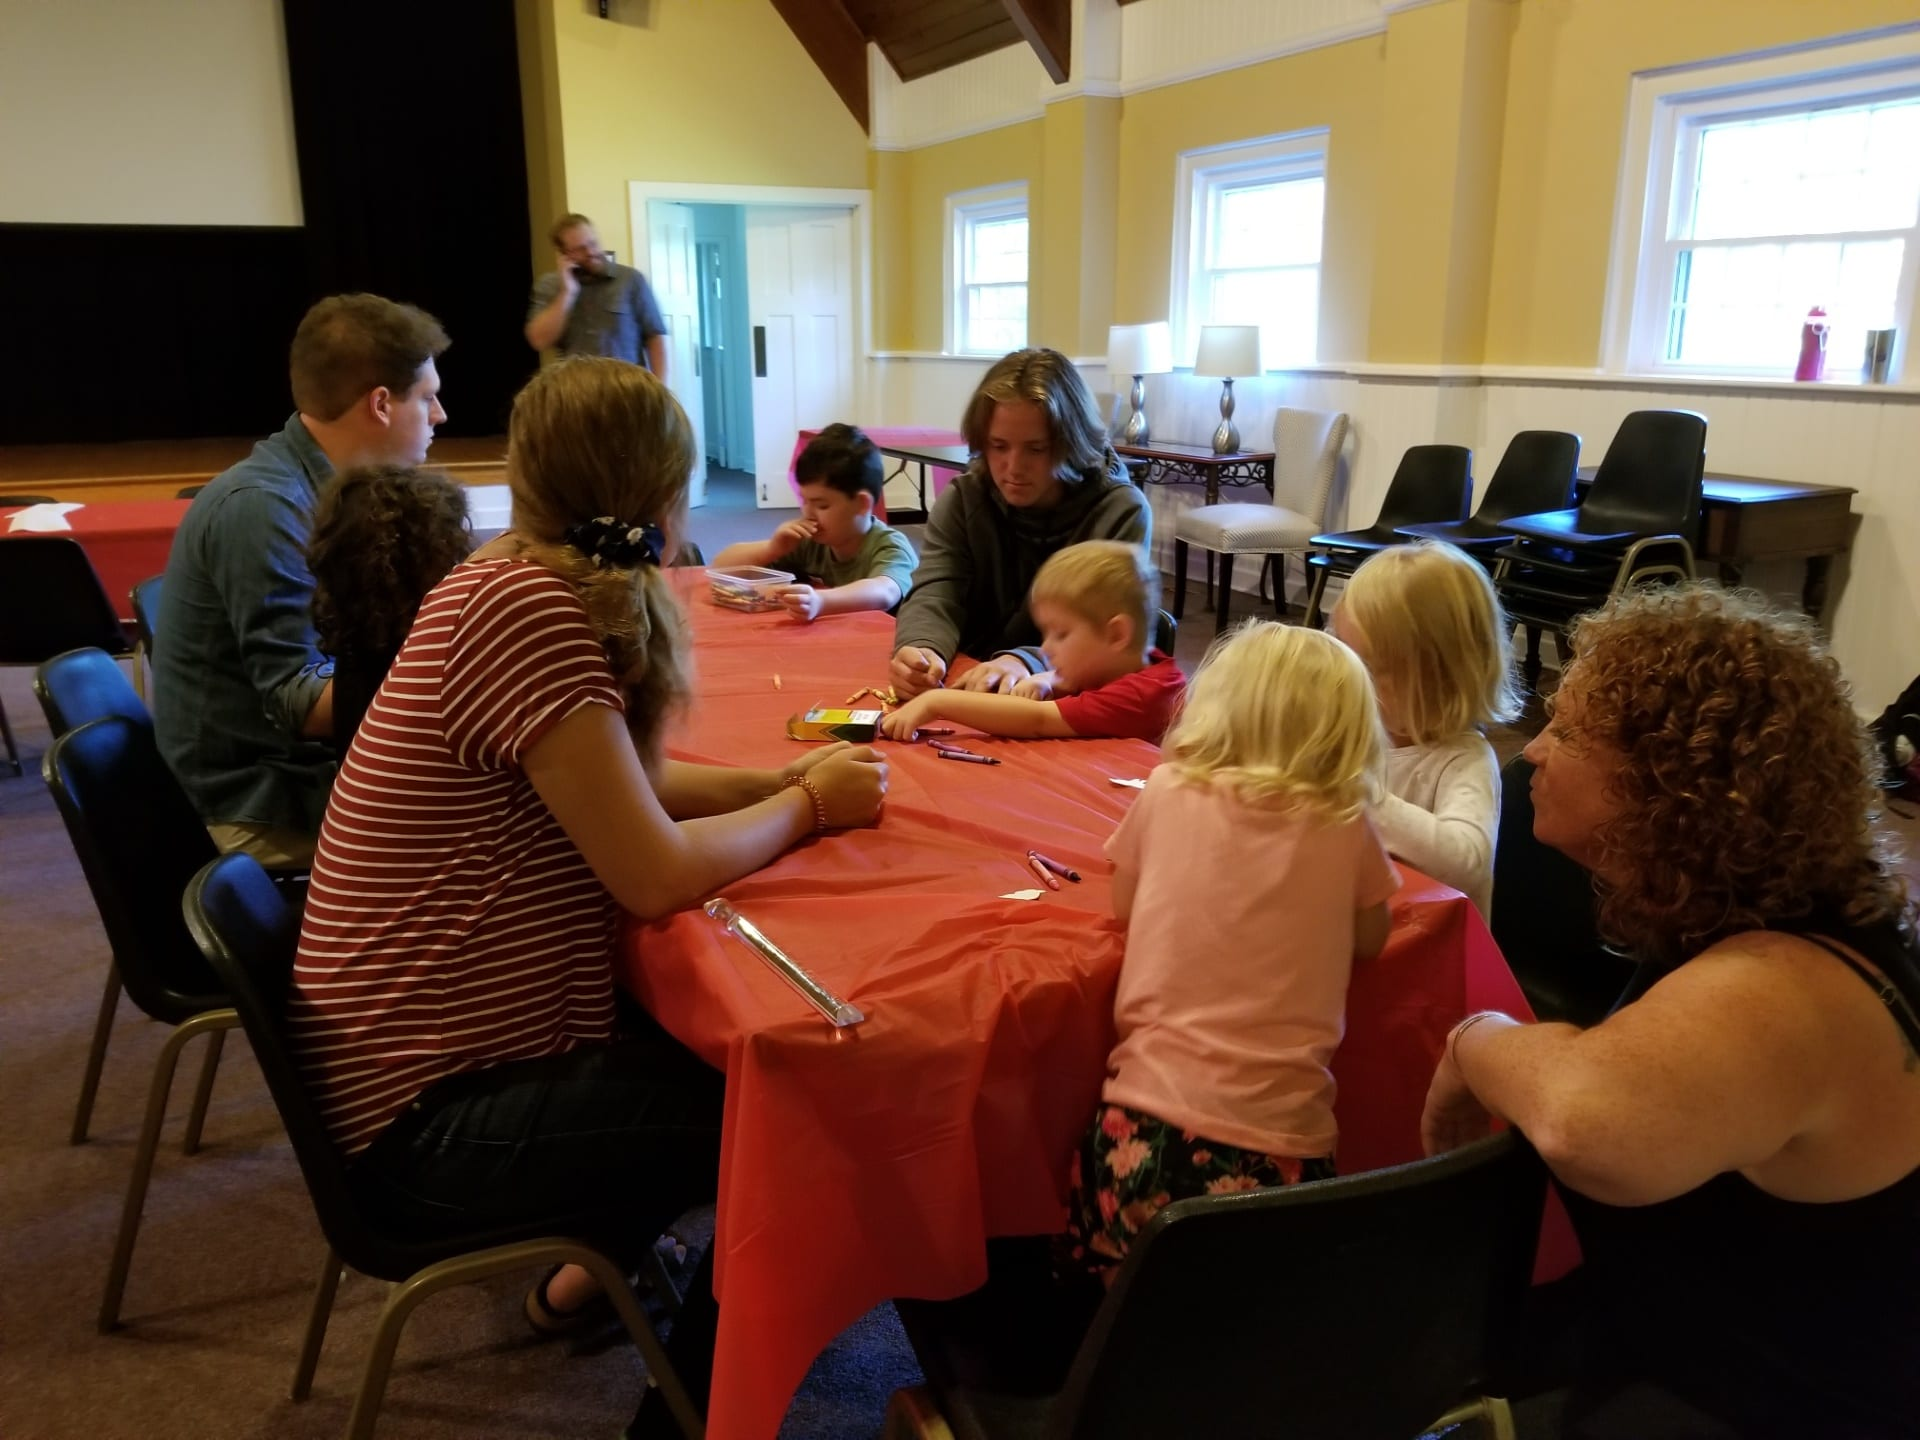 vacation bible school 20190727 093422 - St. Philip's Episcopal Church